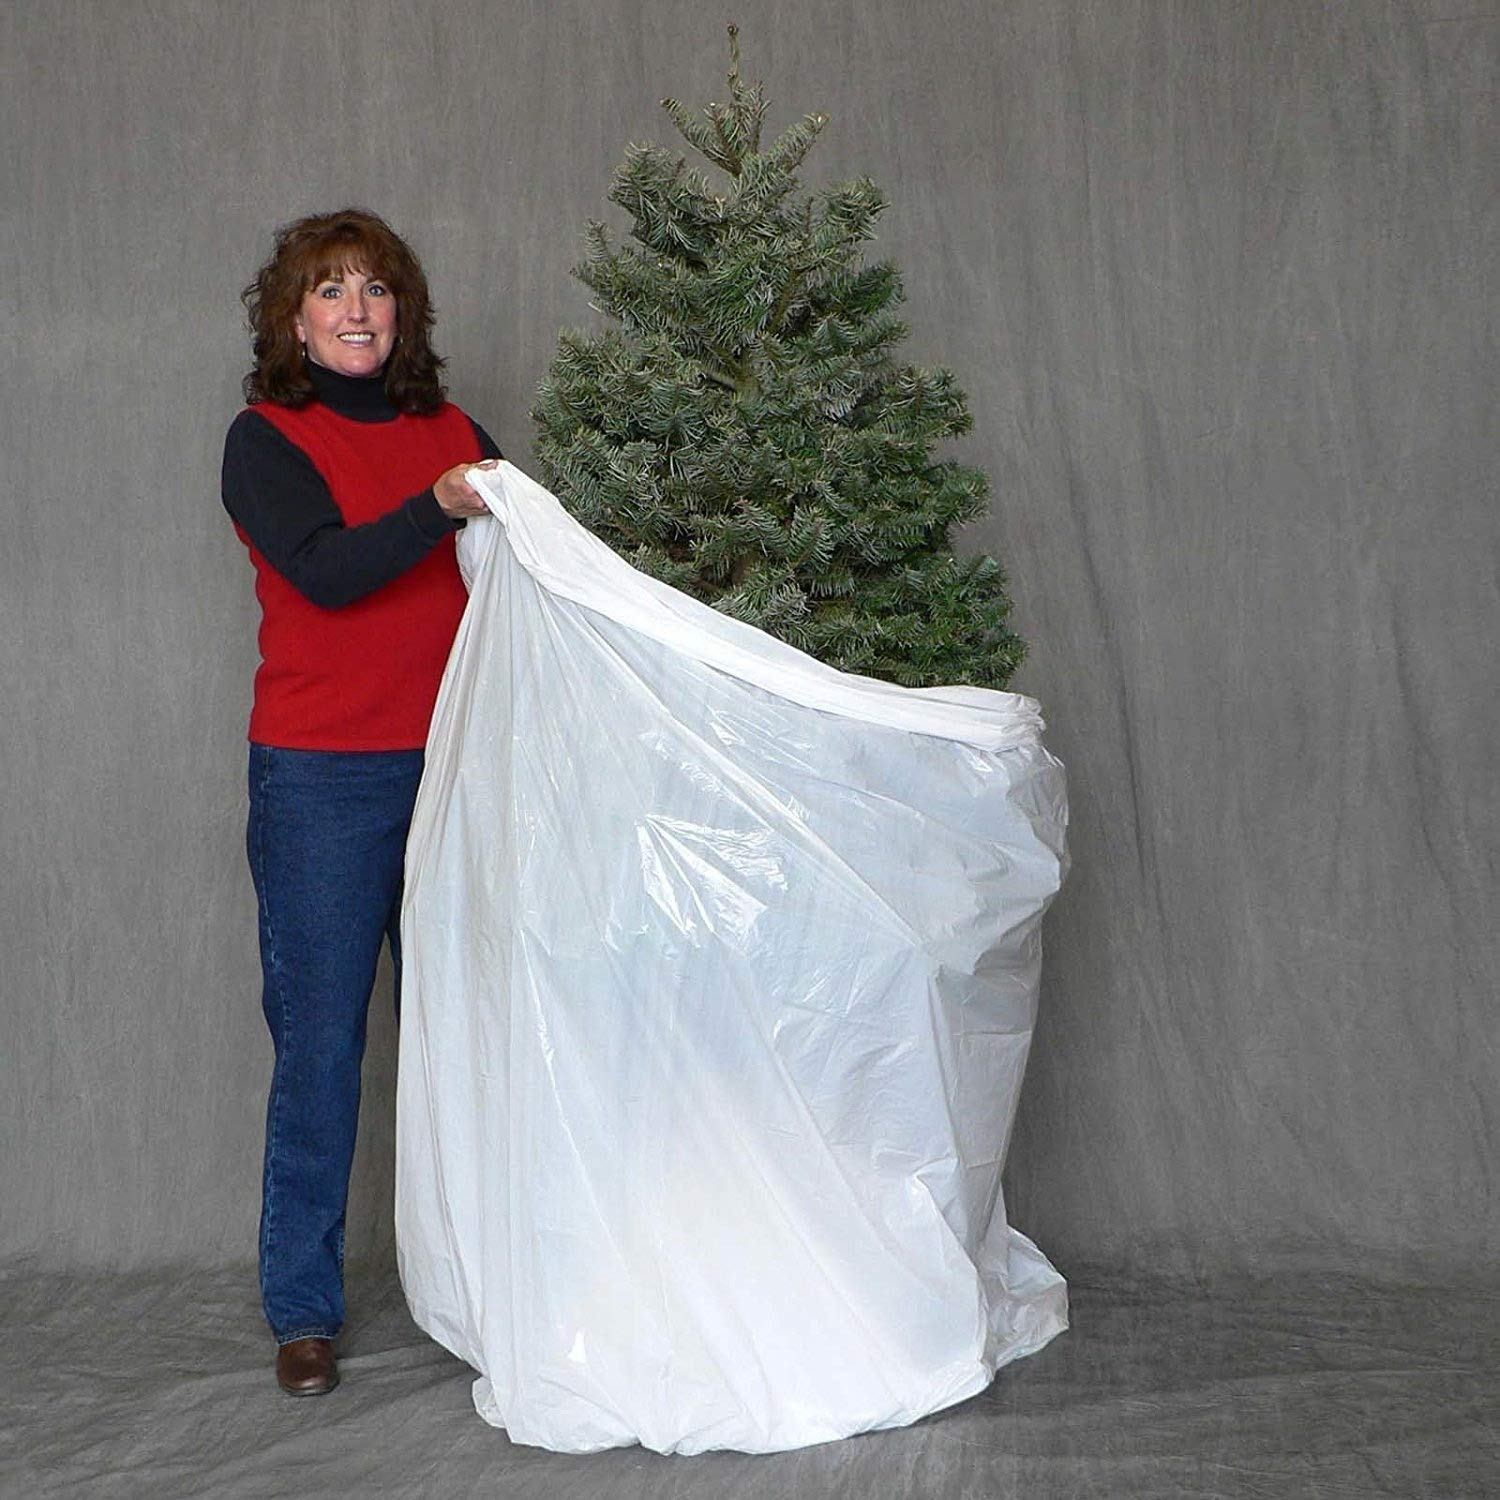 Jumbo Christmas Tree Disposal and Storage Bag - Fits Trees to 9-Feet